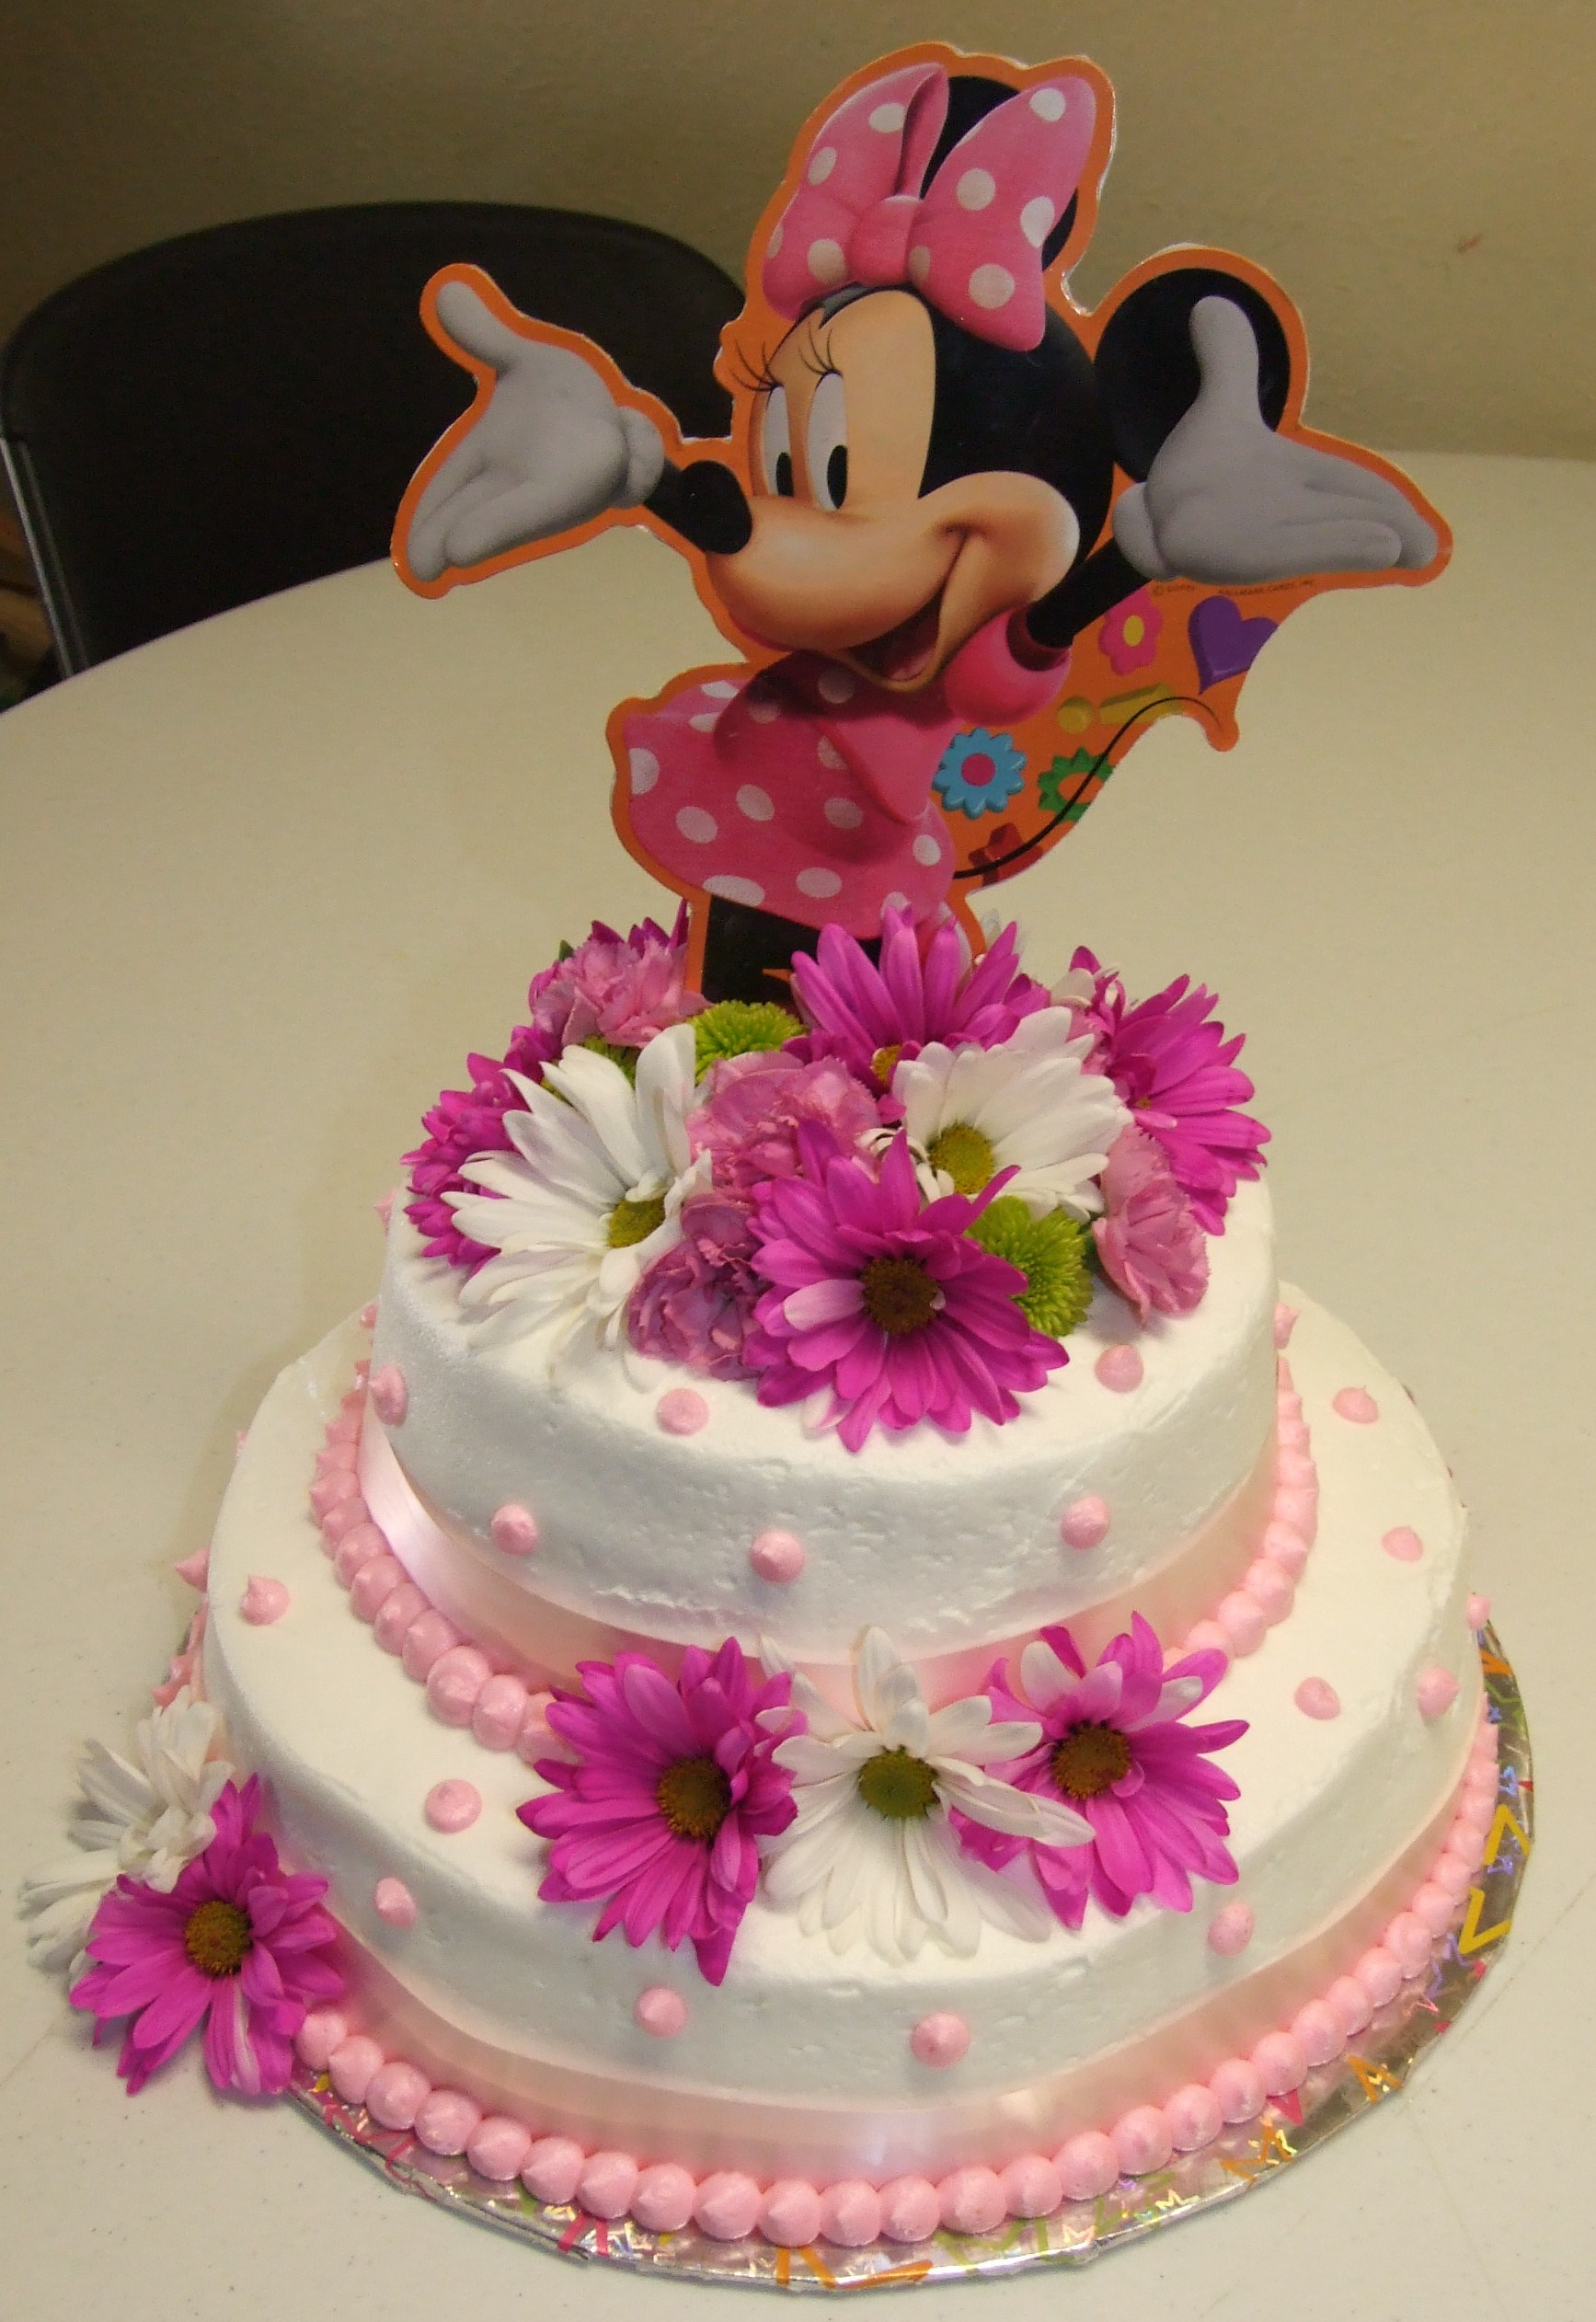 Birthday Cake Ideas Minnie Mouse : Minnie Mouse Cakes   Decoration Ideas Little Birthday Cakes